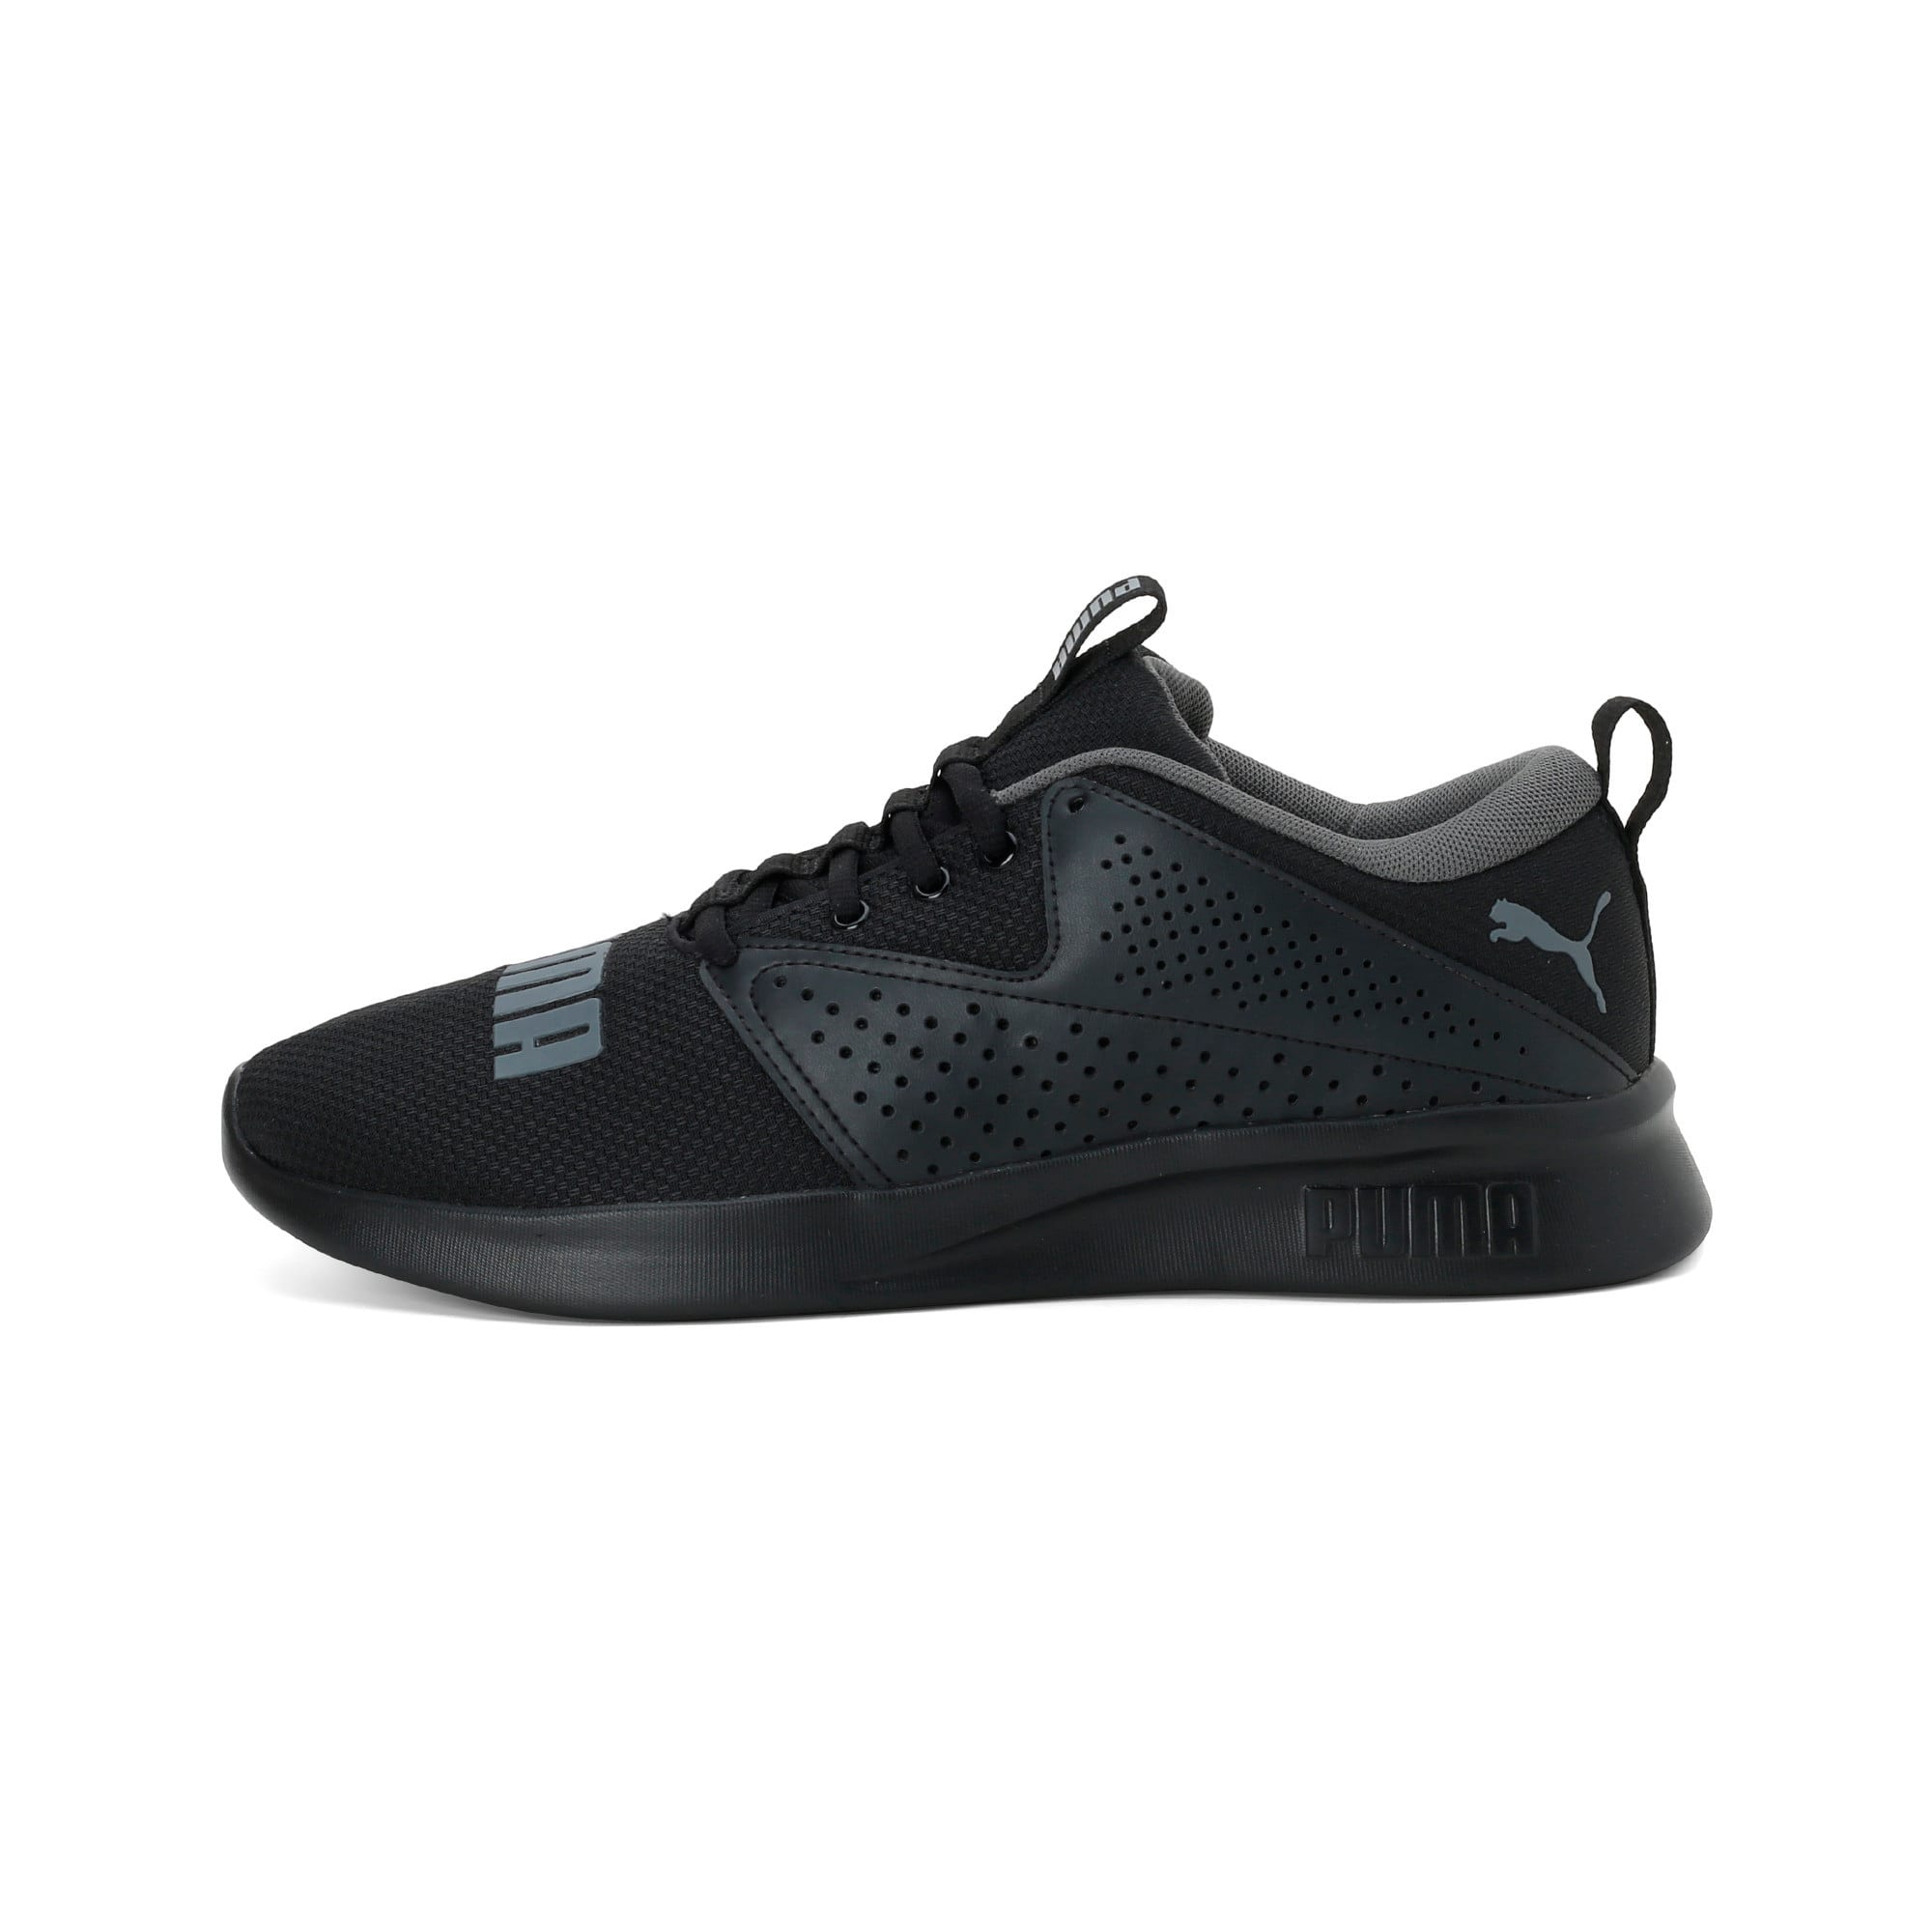 Thumbnail 1 of Flyer Modern Running Shoes, Puma Black-CASTLEROCK, medium-IND